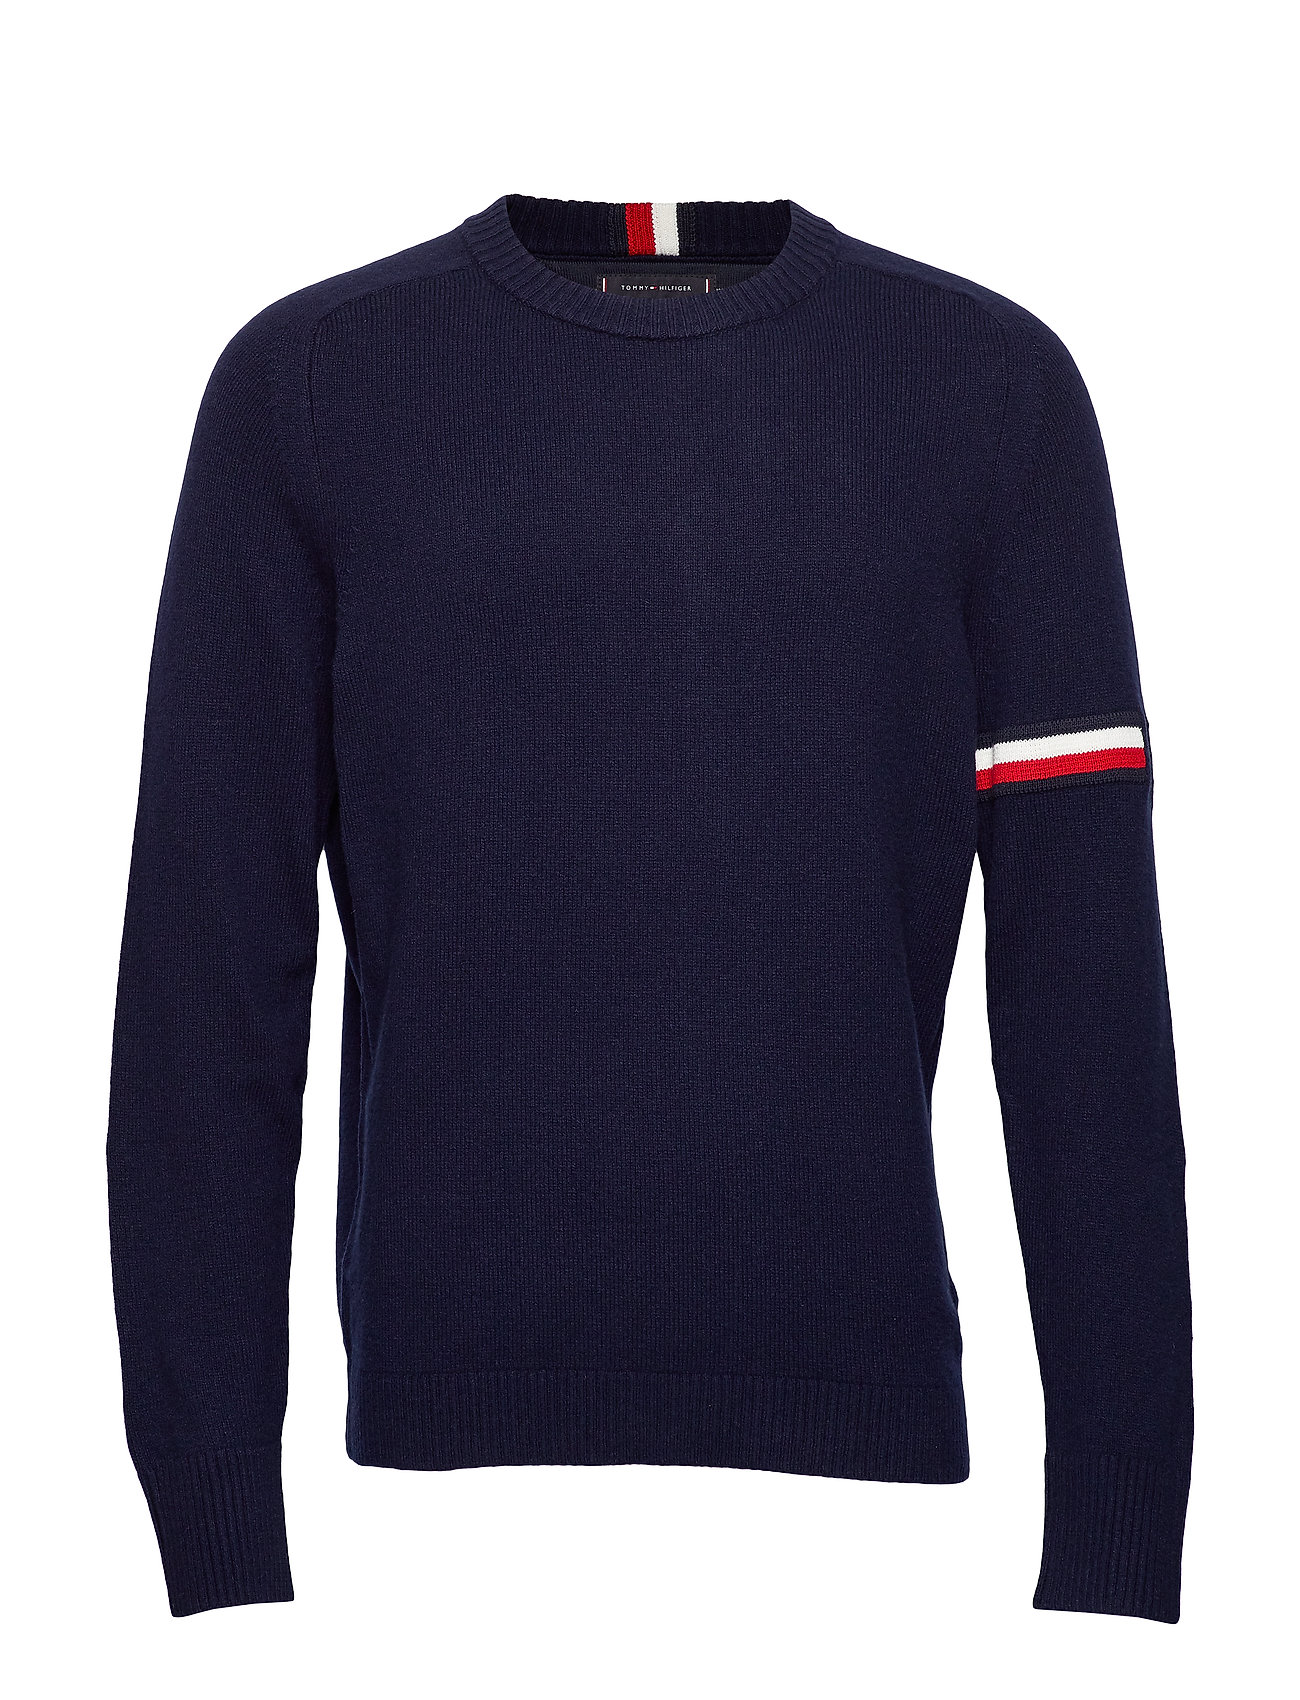 Tommy Hilfiger TH MONOGRAM BRANDED SWEATER - SKY CAPTAIN